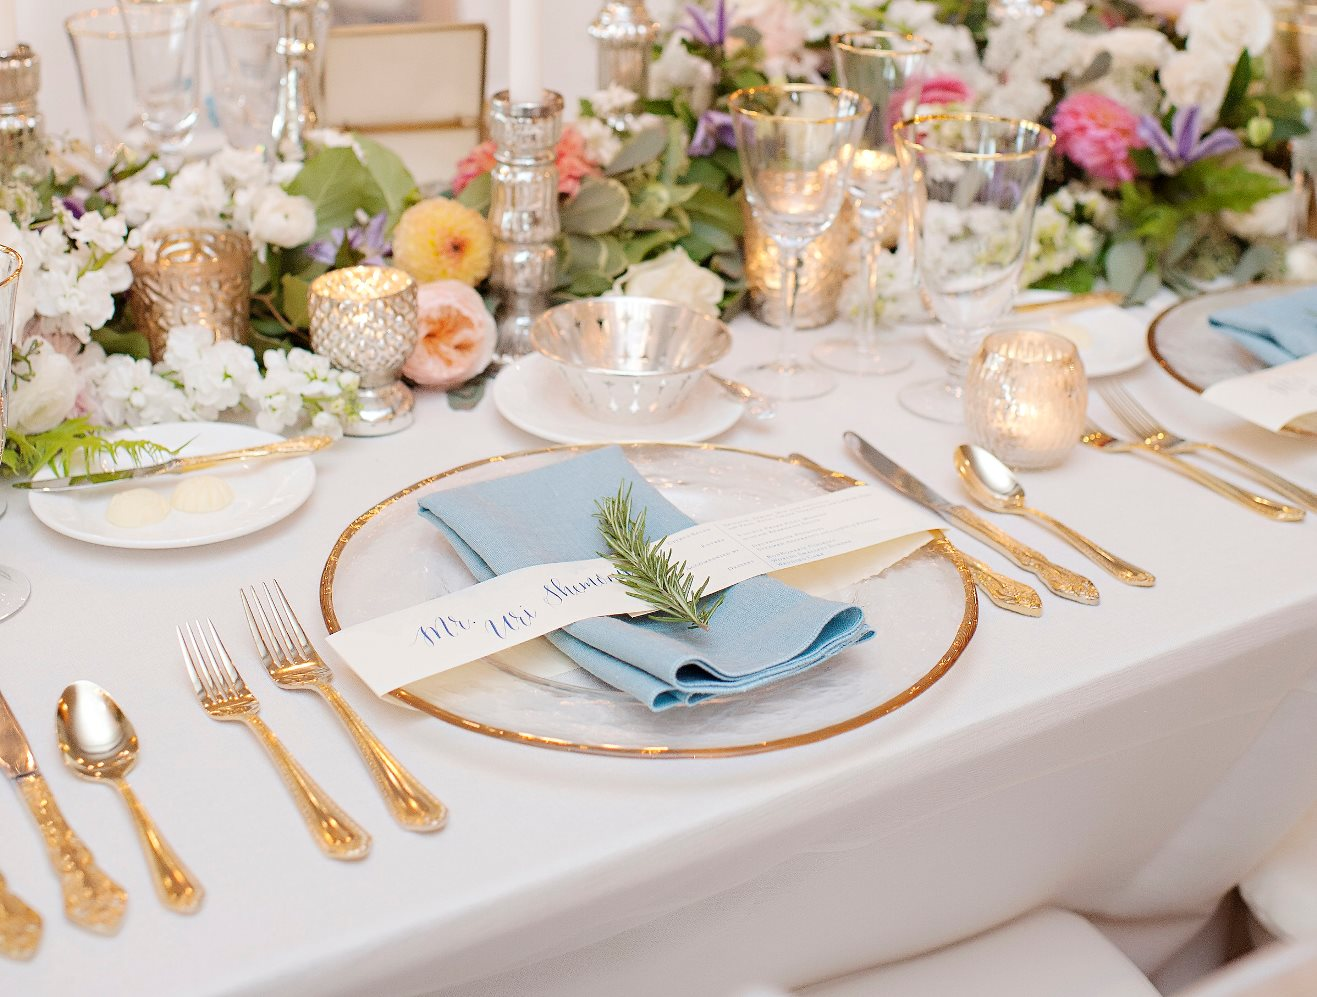 Gallery image for Place Plate/Chargers